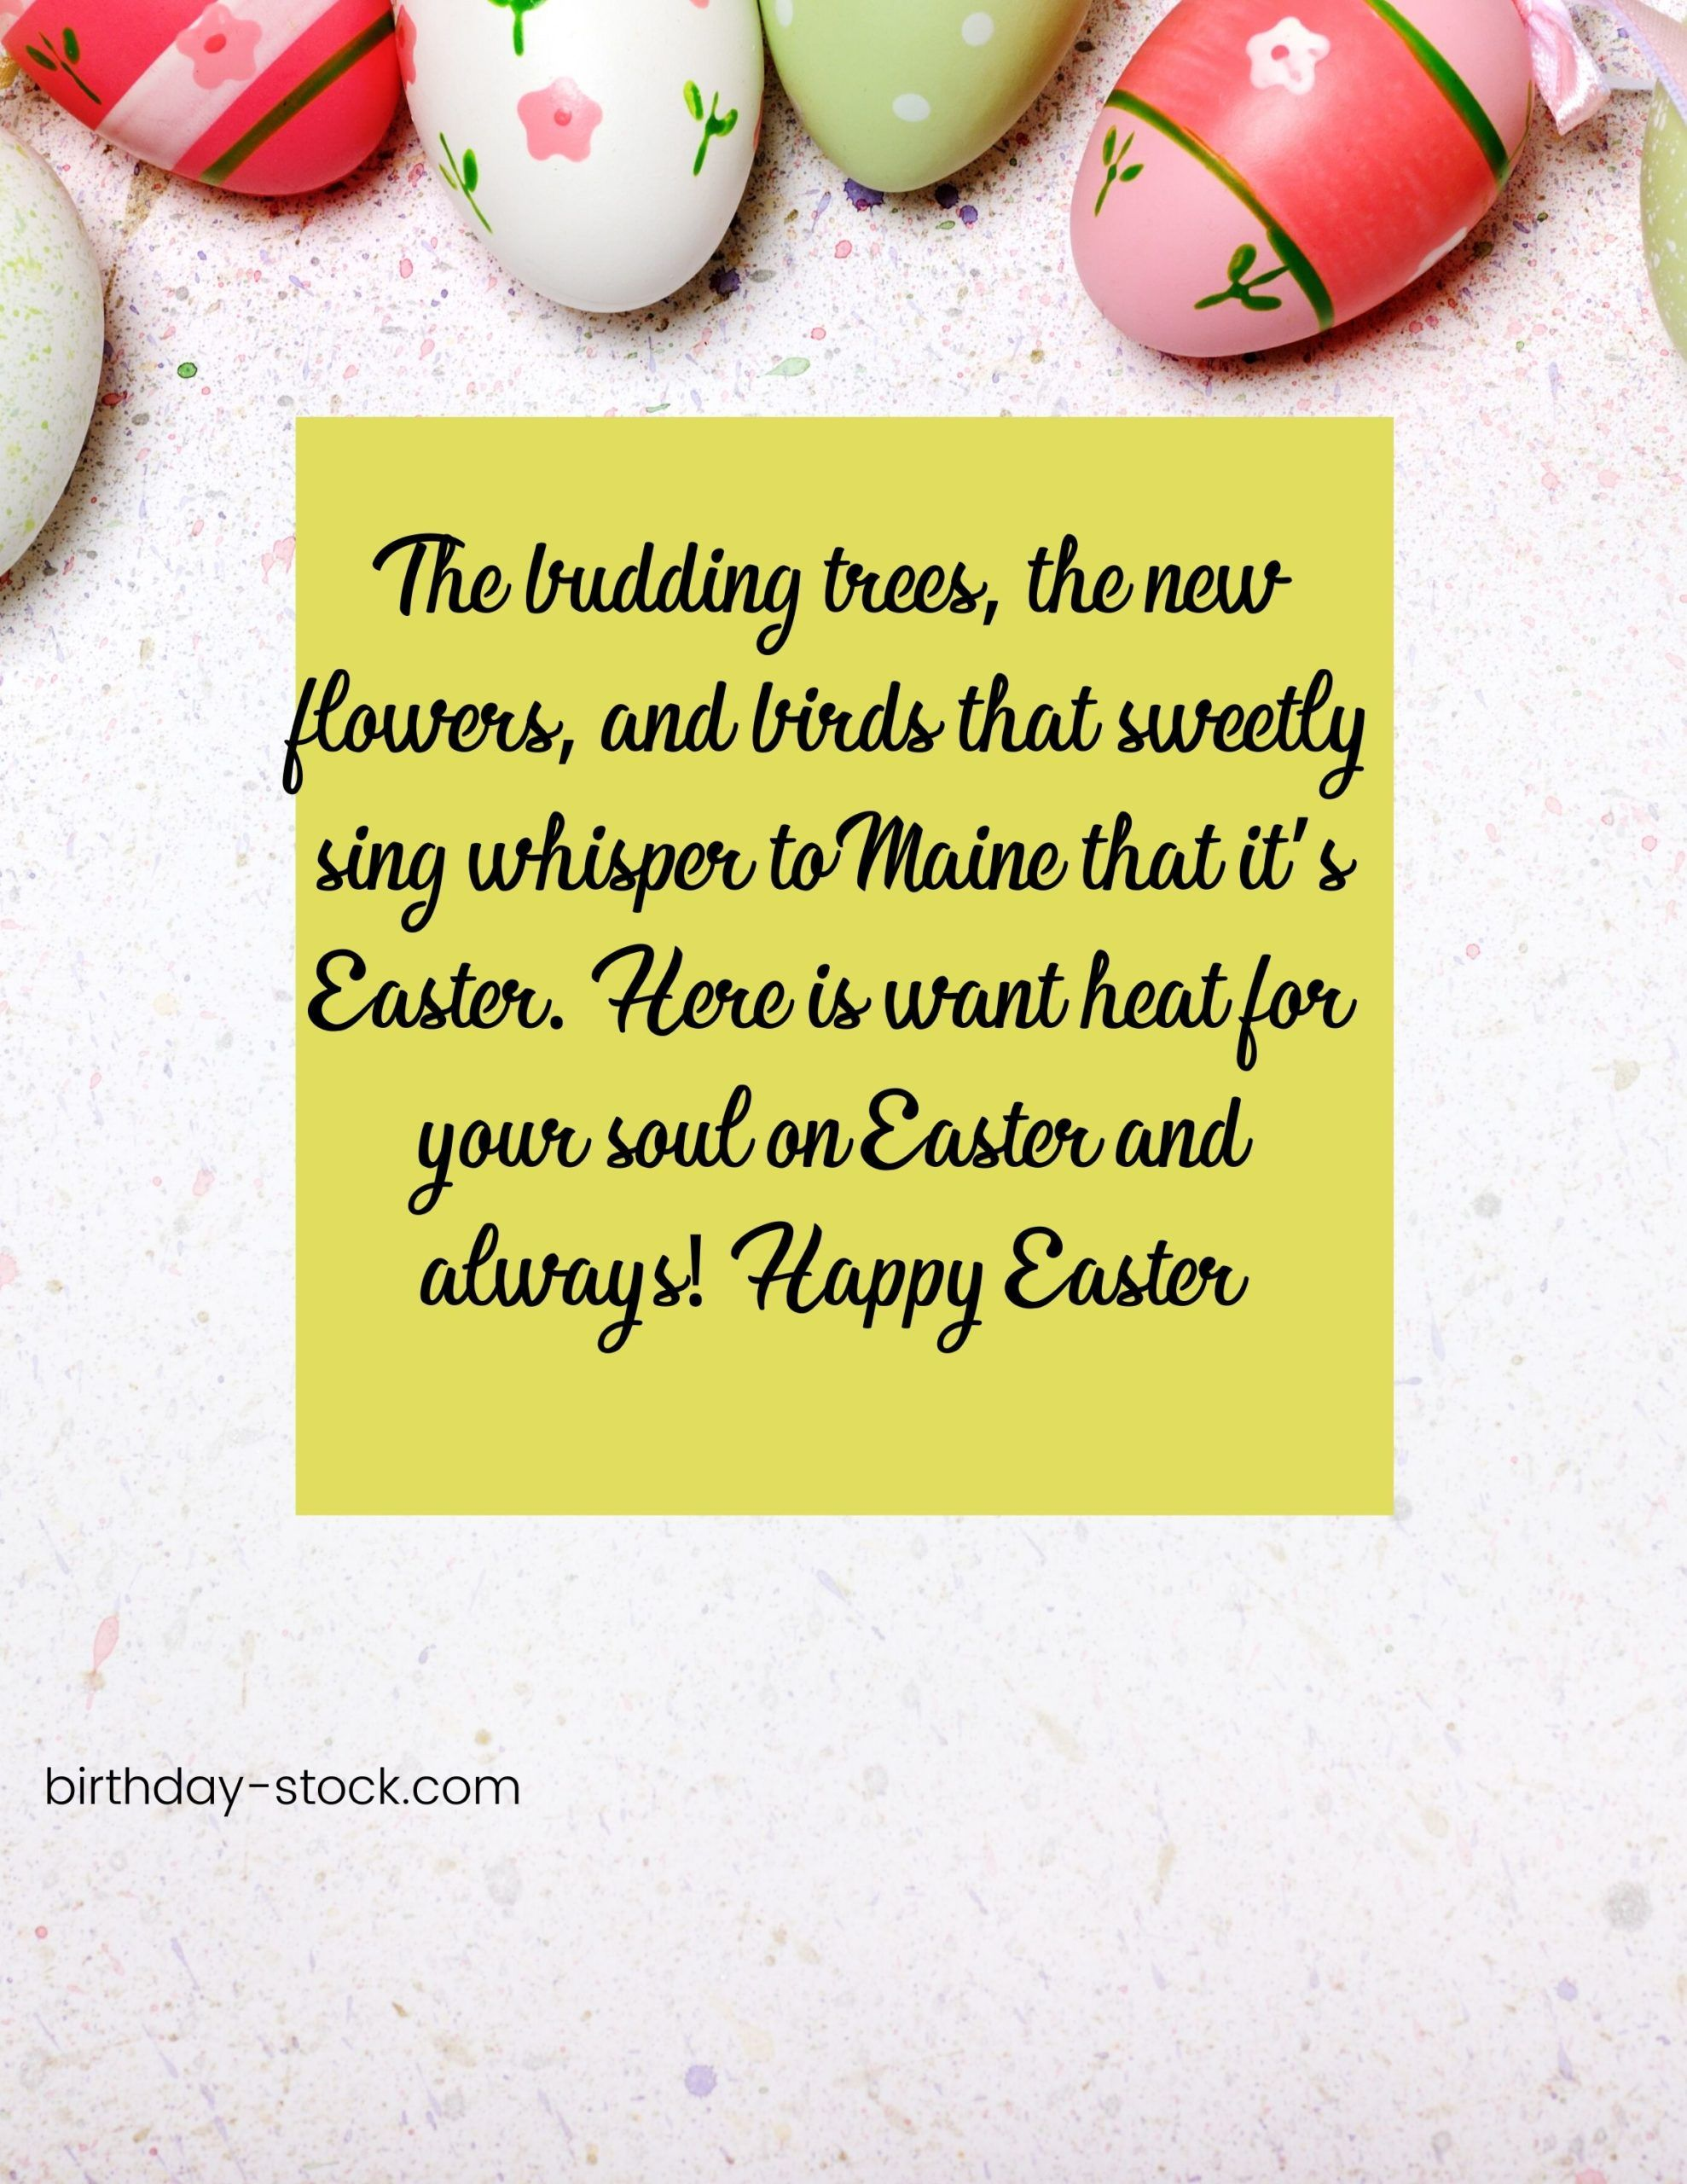 Happy Easter Quotes Images 2020 In 2020 Happy Easter Quotes Easter Quotes Images Easter Quotes